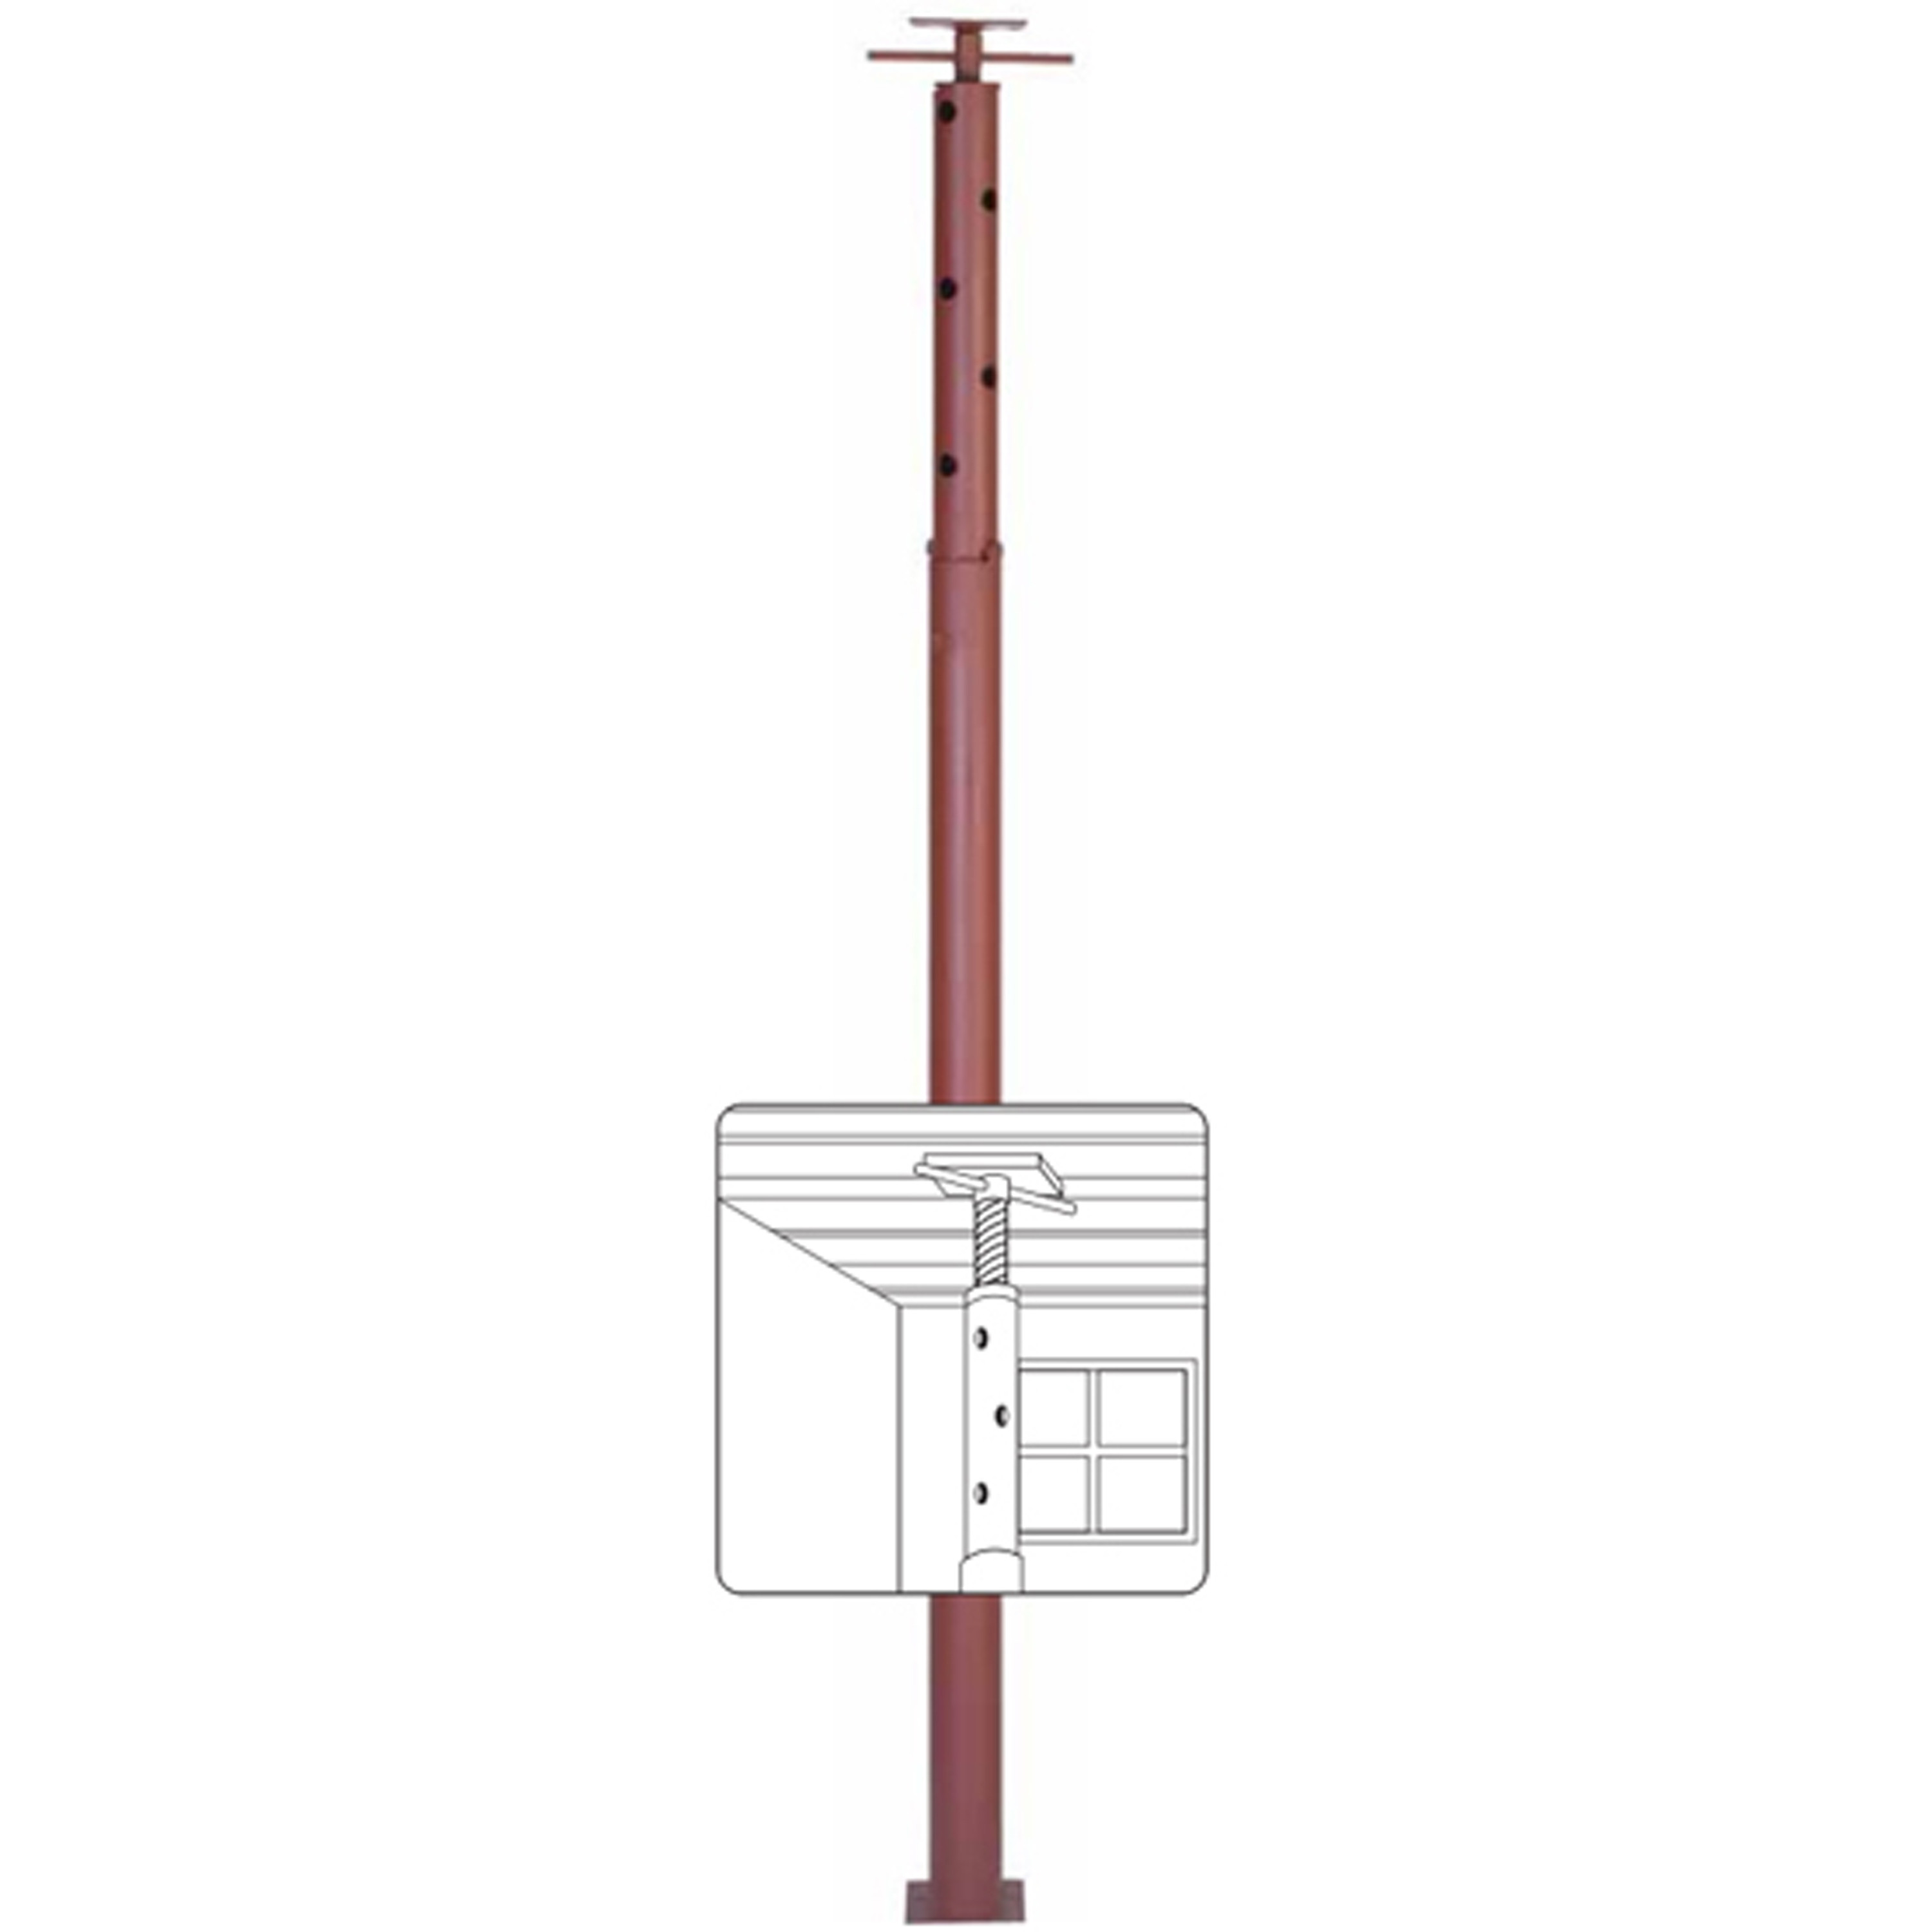 Marshall Stamping Jp16 Extend O Post  Inch  Inch Adjustable Jackpost 725697160003 1